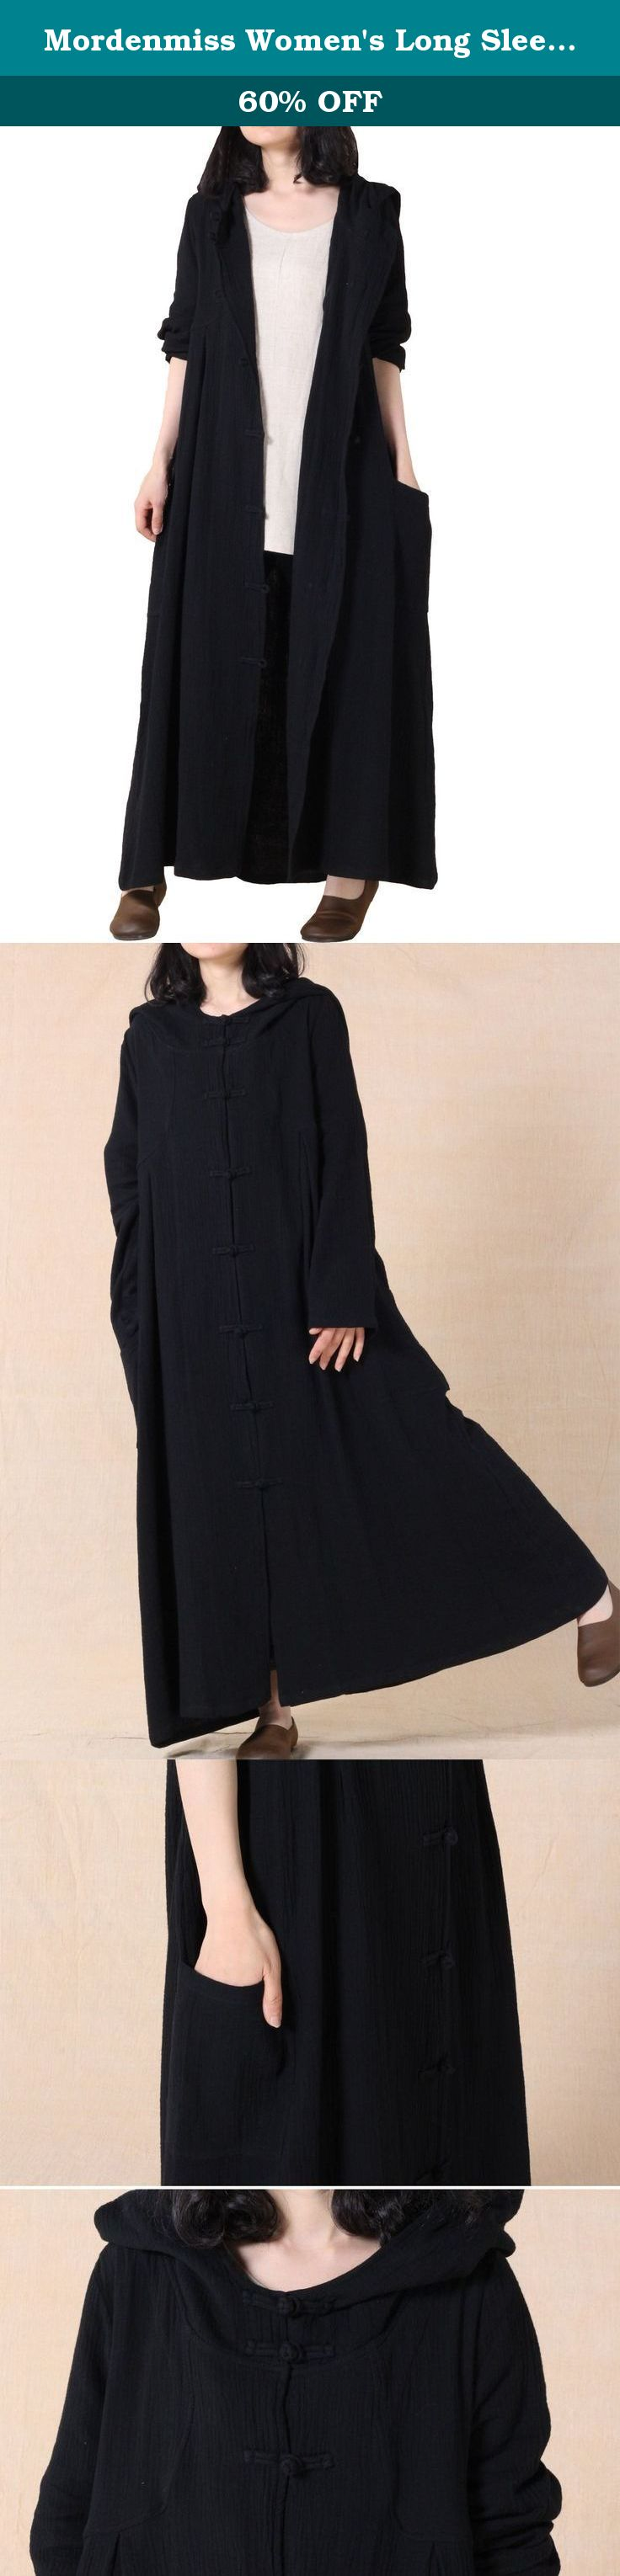 Mordenmiss womenus long sleeve hooded frog button coat with two